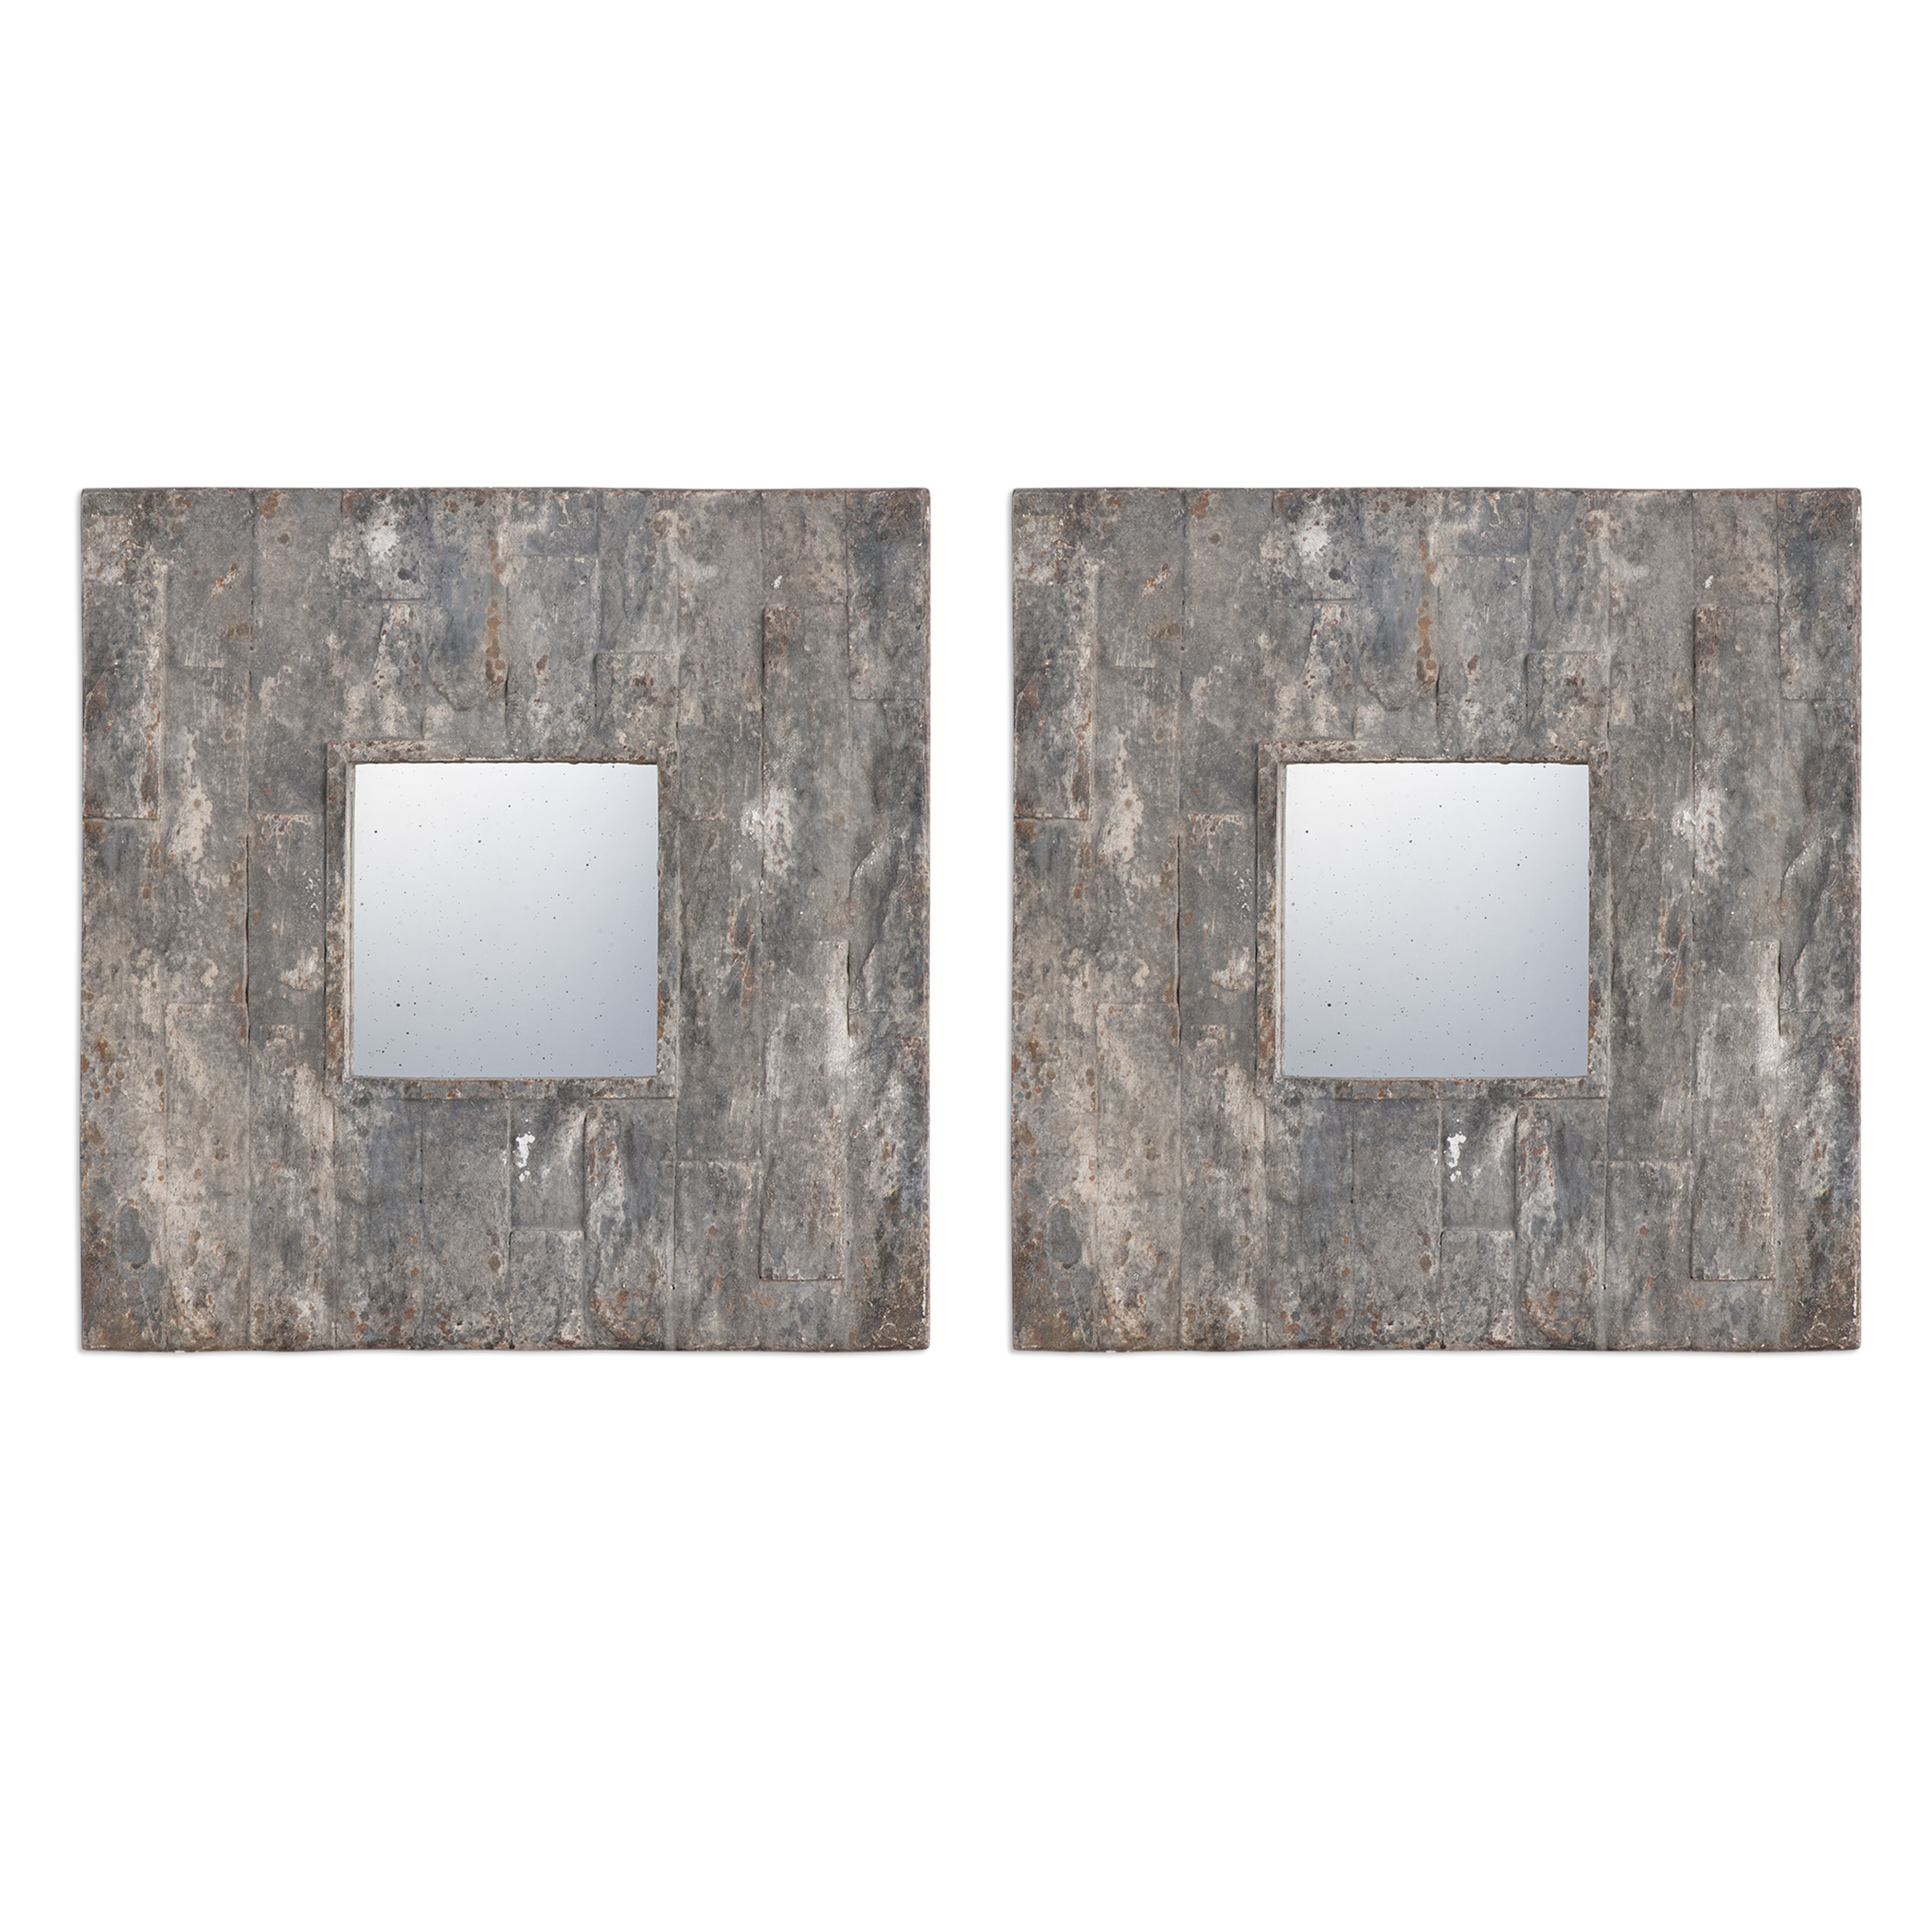 Uttermost Mirrors Piera Square Aged Stone Mirrors, S/2 - Item Number: 09088